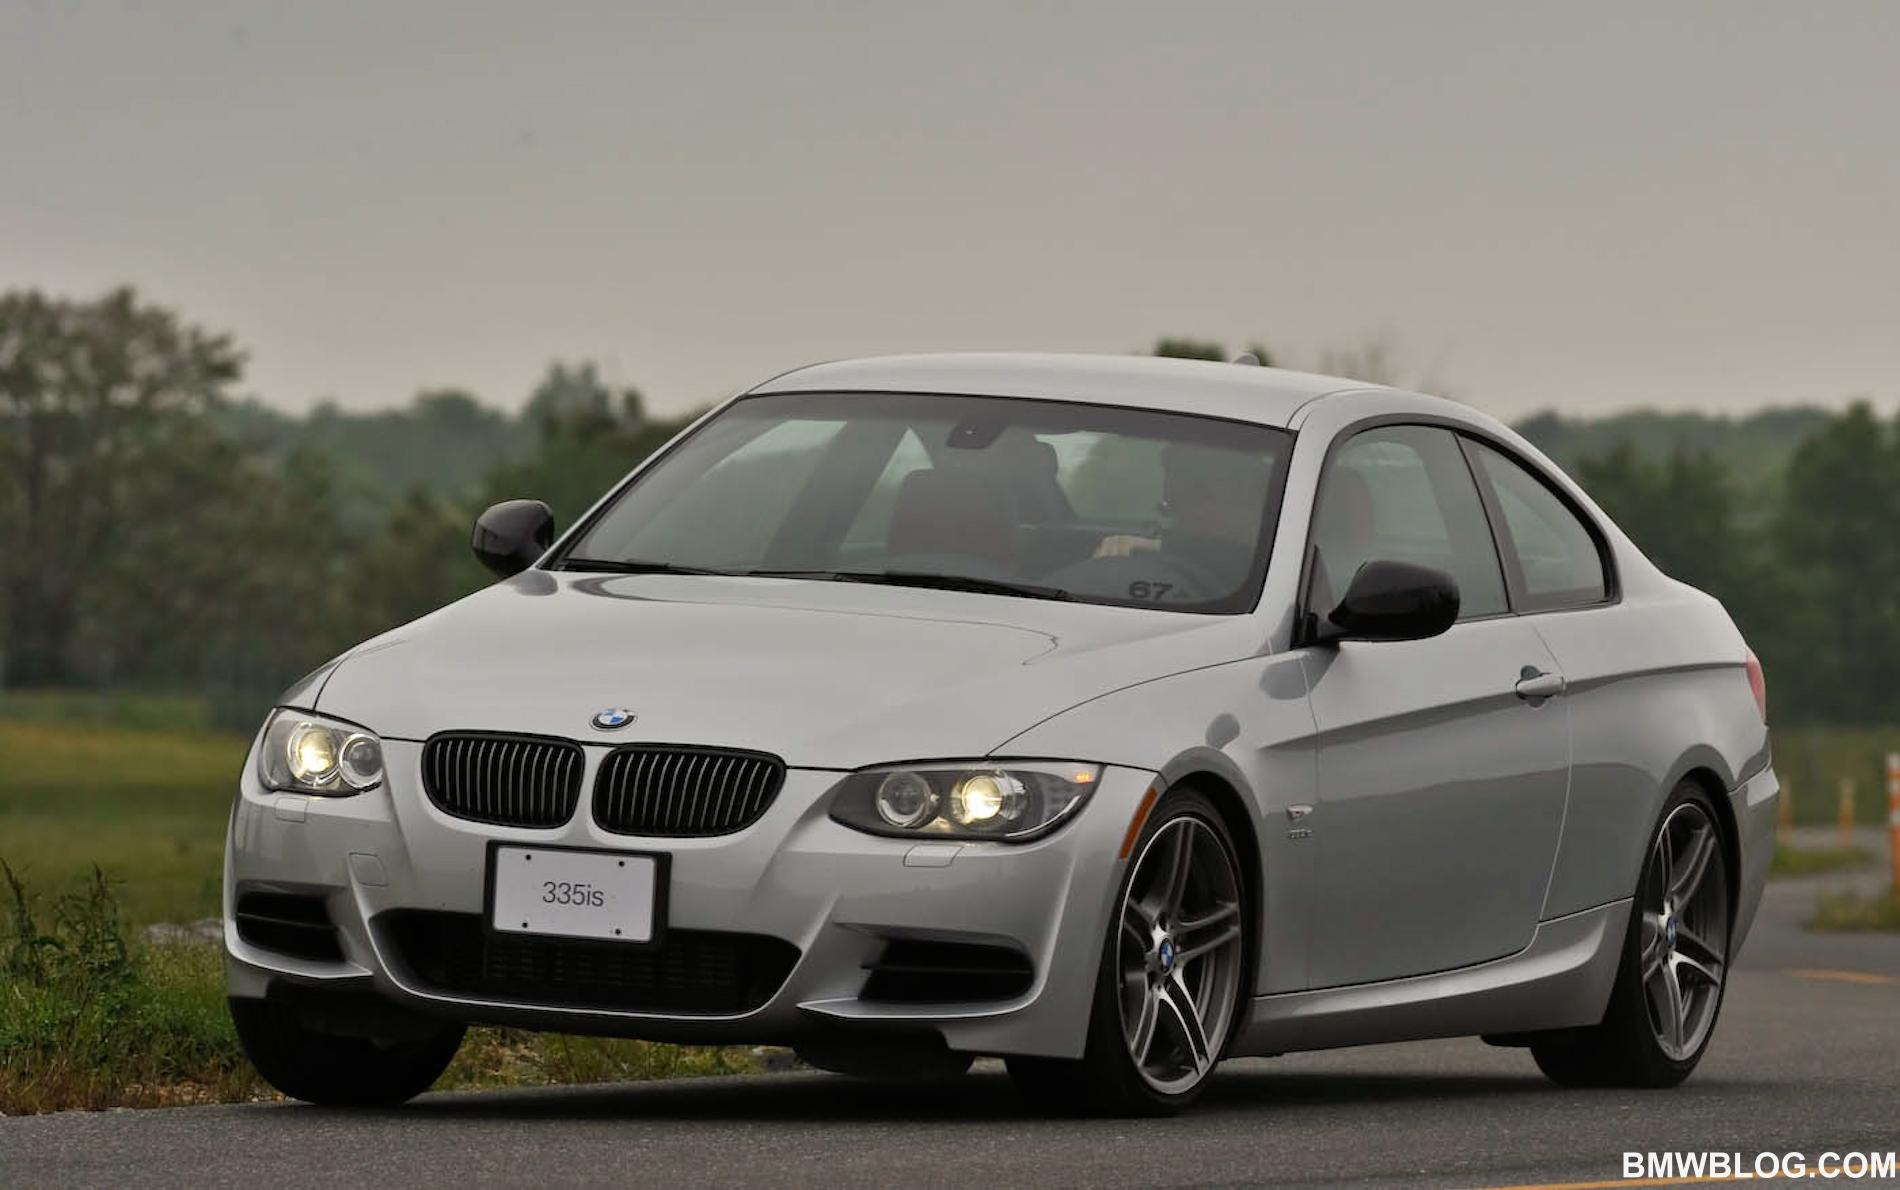 BMWBLOG On-Track Comparison: M3 vs 335iS - BMW\'s Sibling Rivalry